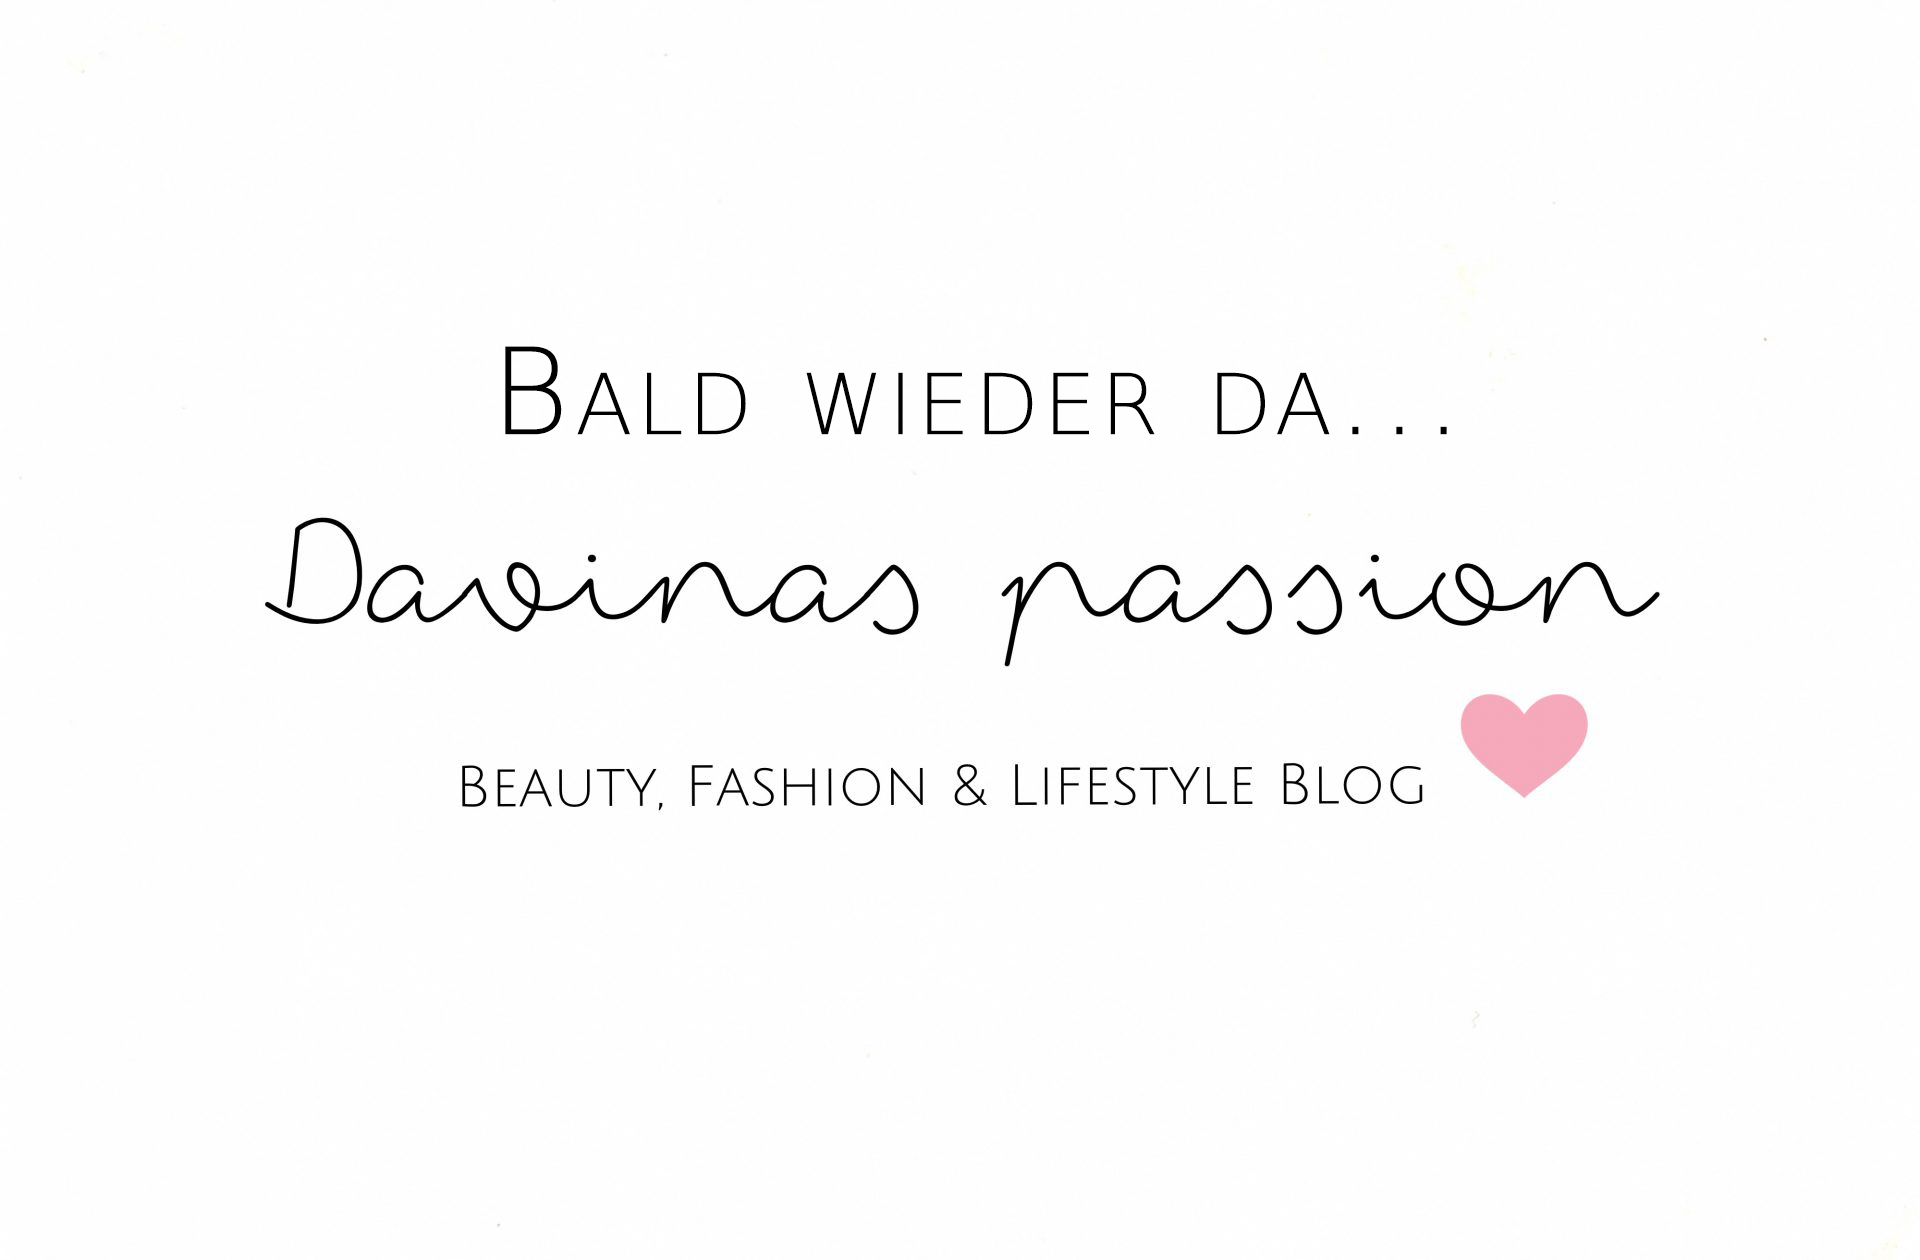 Bald wieder da. Davinas passion - Beauty, Fashion & Lifestyle Blog